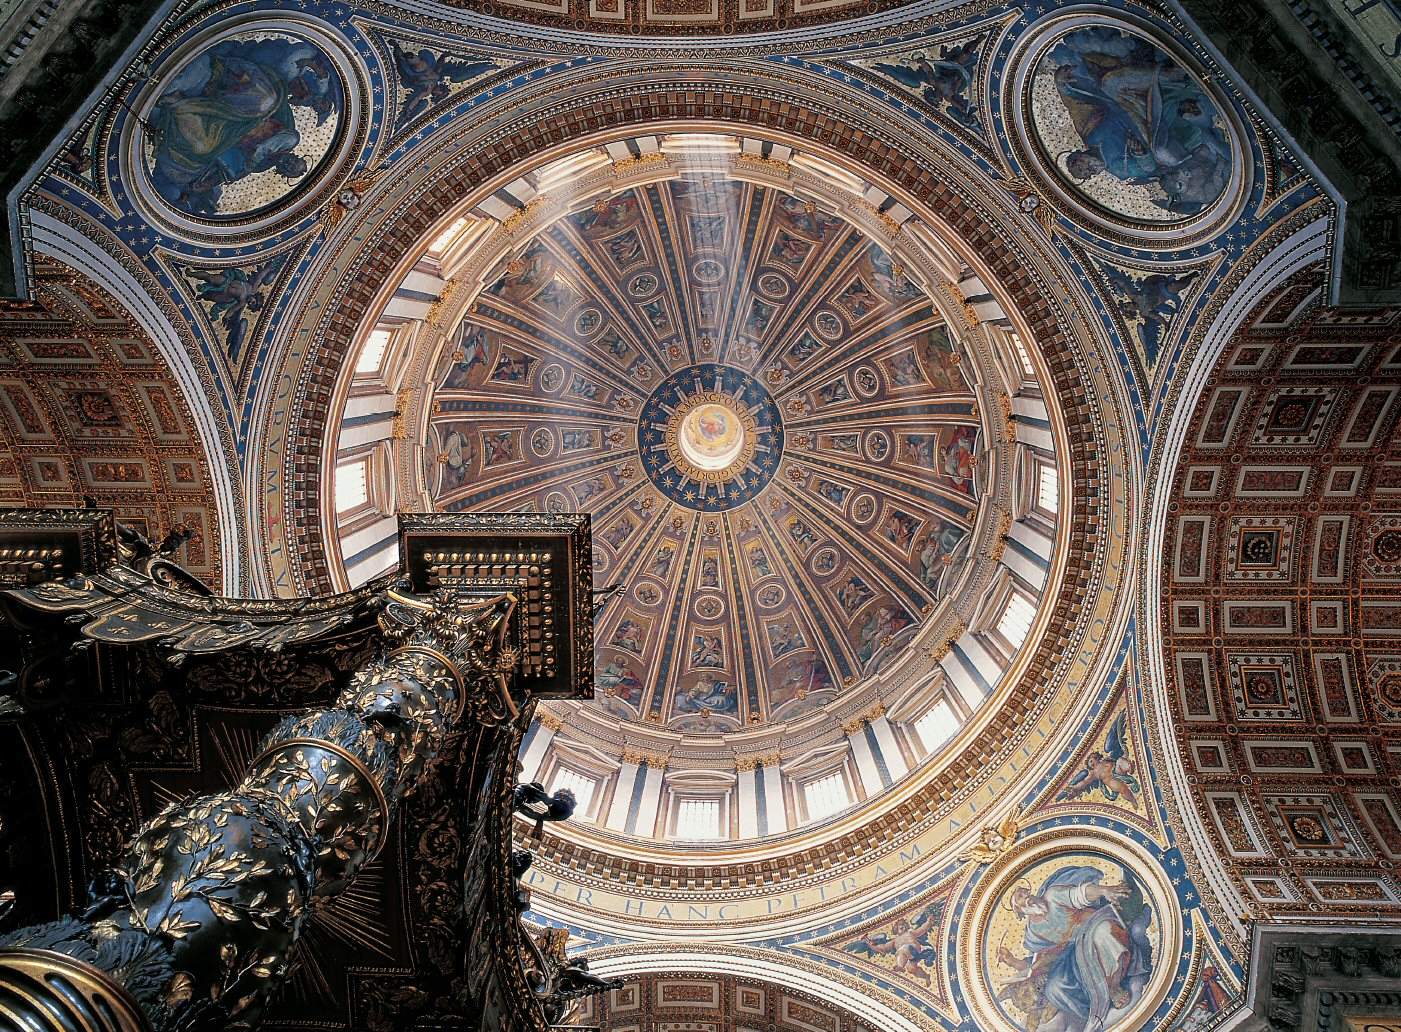 The Cupola of St. Peter's Basilica (interior view) - www.visit-vaticancity.com